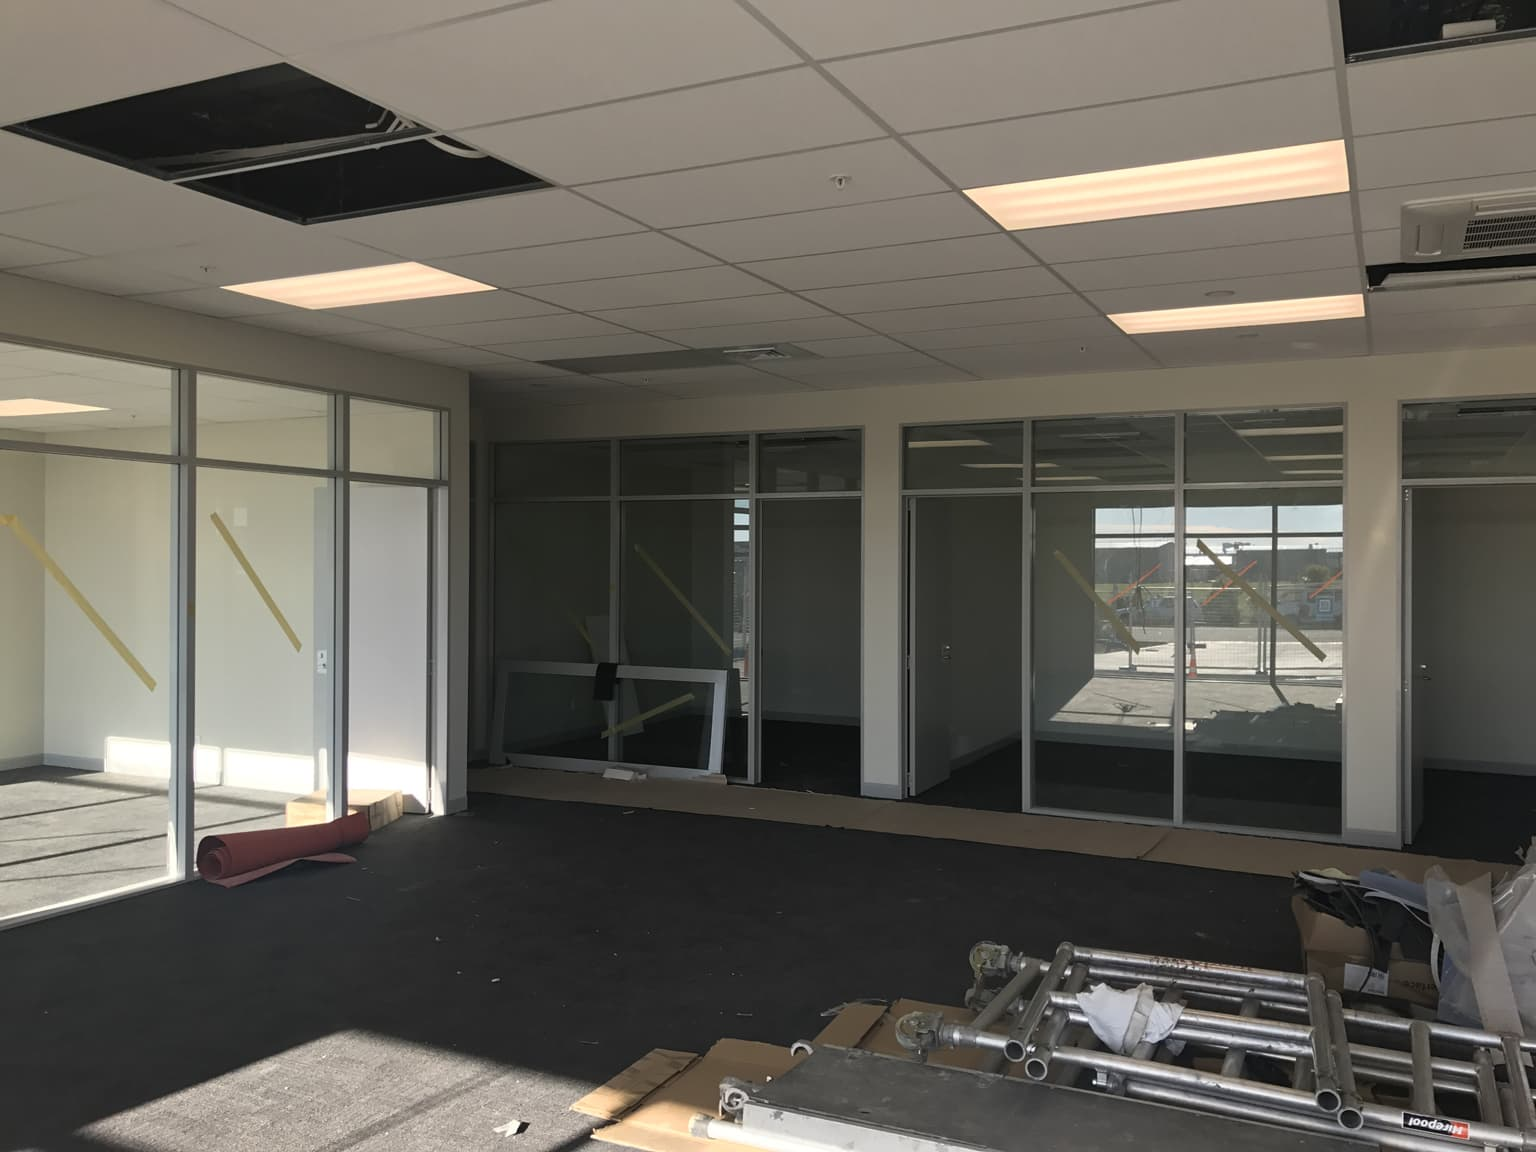 A commercial office fit-out done by the builders in Christchurch at H3 Construction